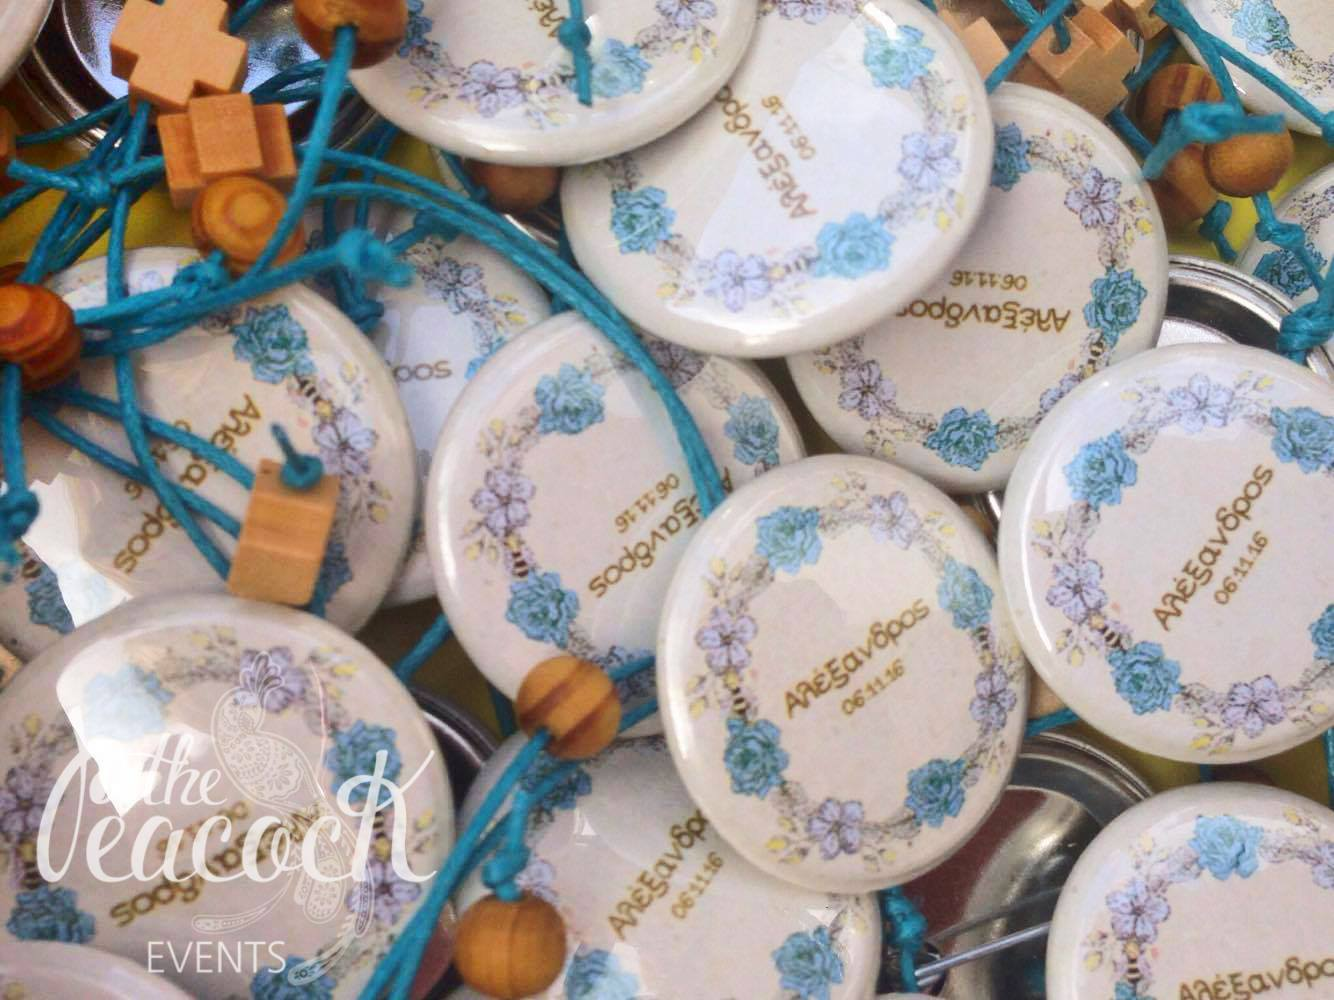 Honey Bee baptism christening martyriko favor cross church witness baby boy guest friend family pin badge wreath flowers beehive box